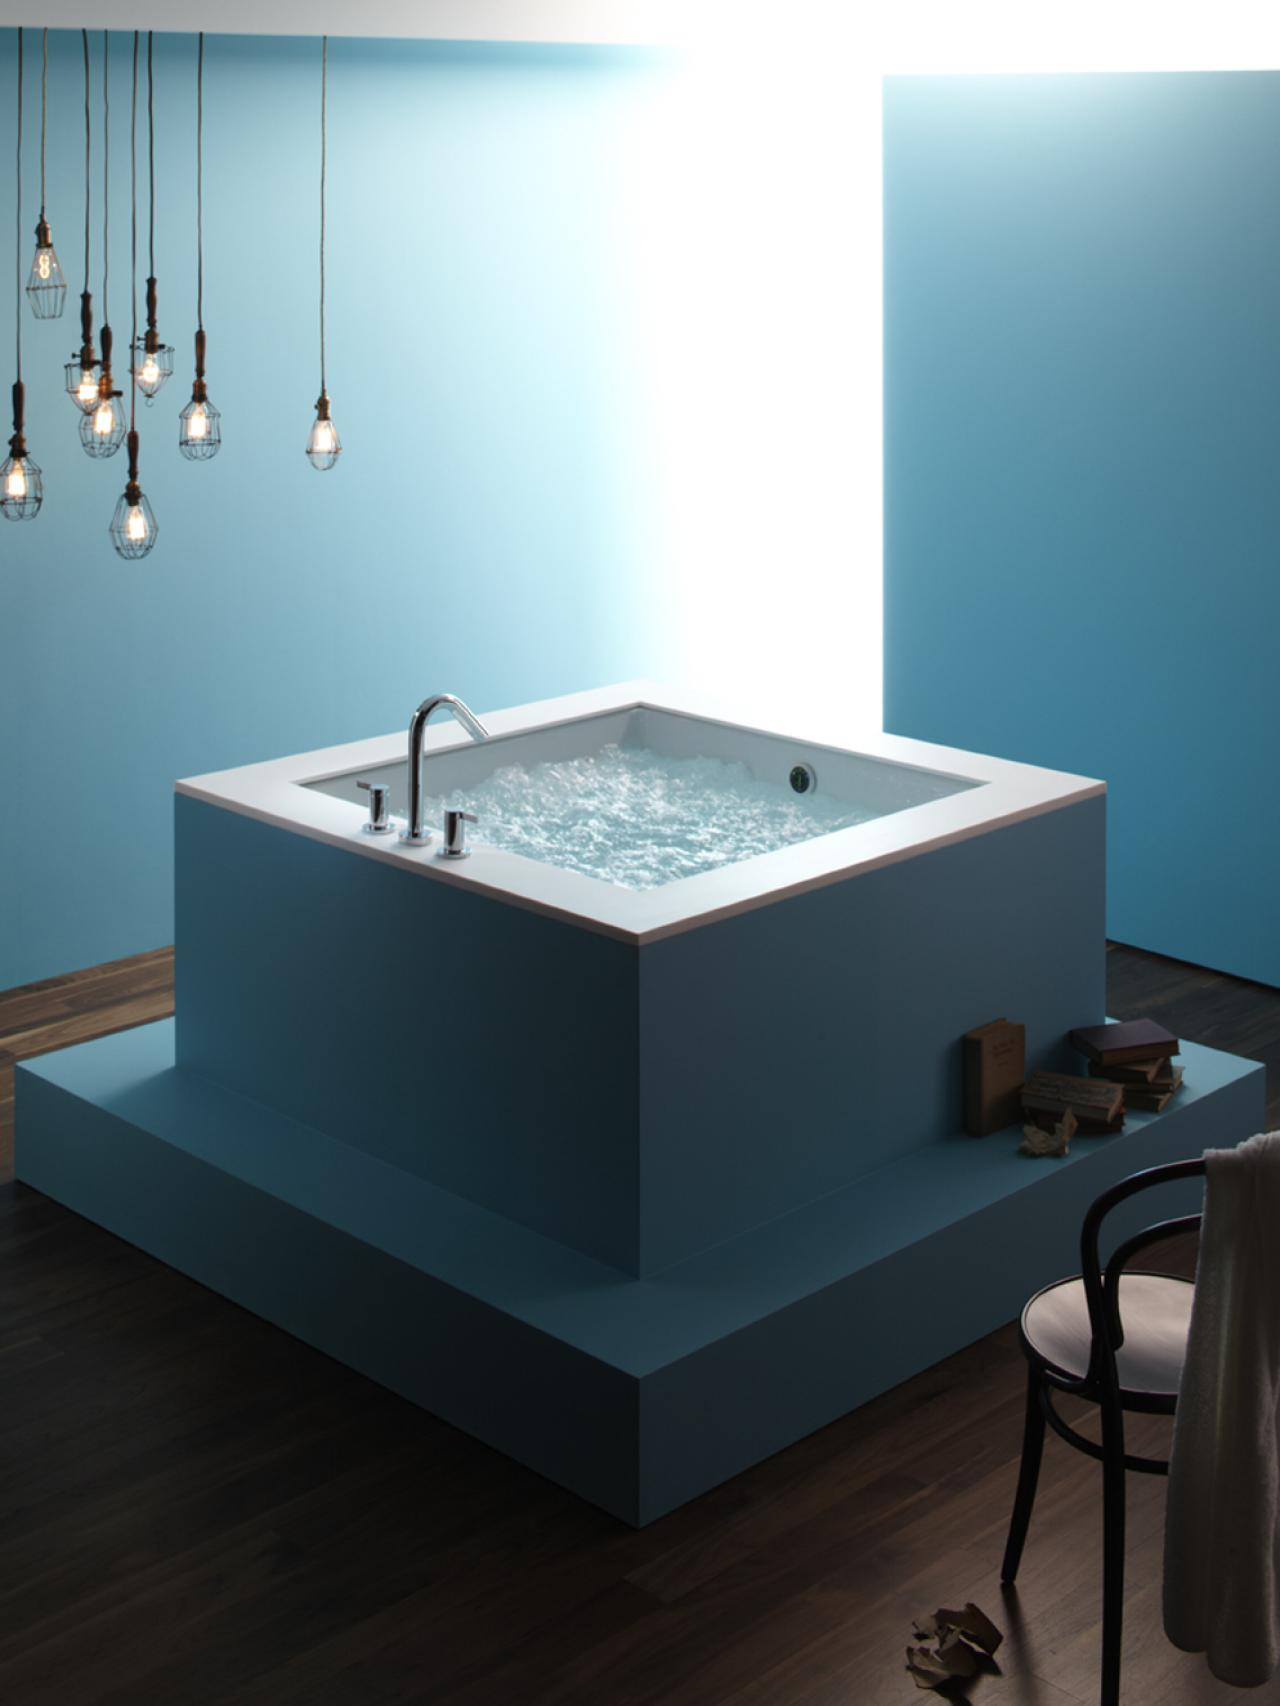 RX-Press-Kits_cube-tub-bath_s3x4.jpg.rend.hgtvcom.1280.1707